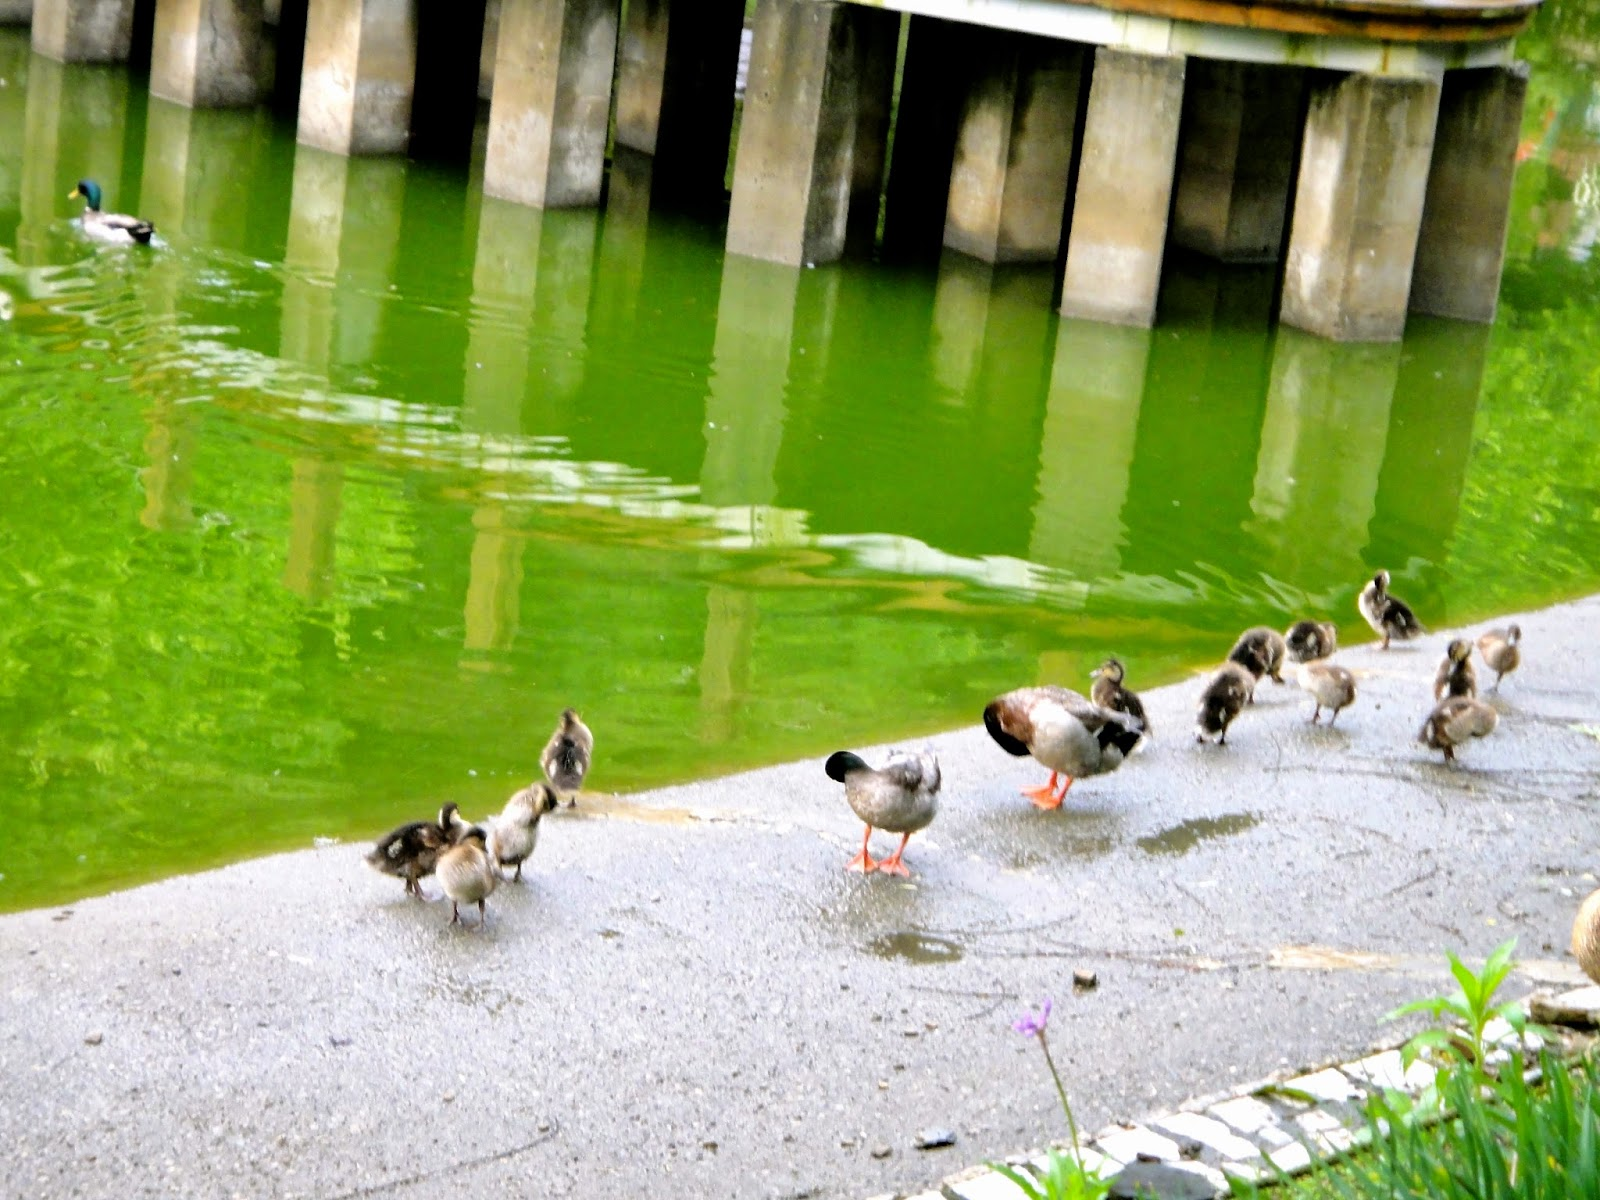 Cute family of ducks small Swiss Garden Cingjing Farm